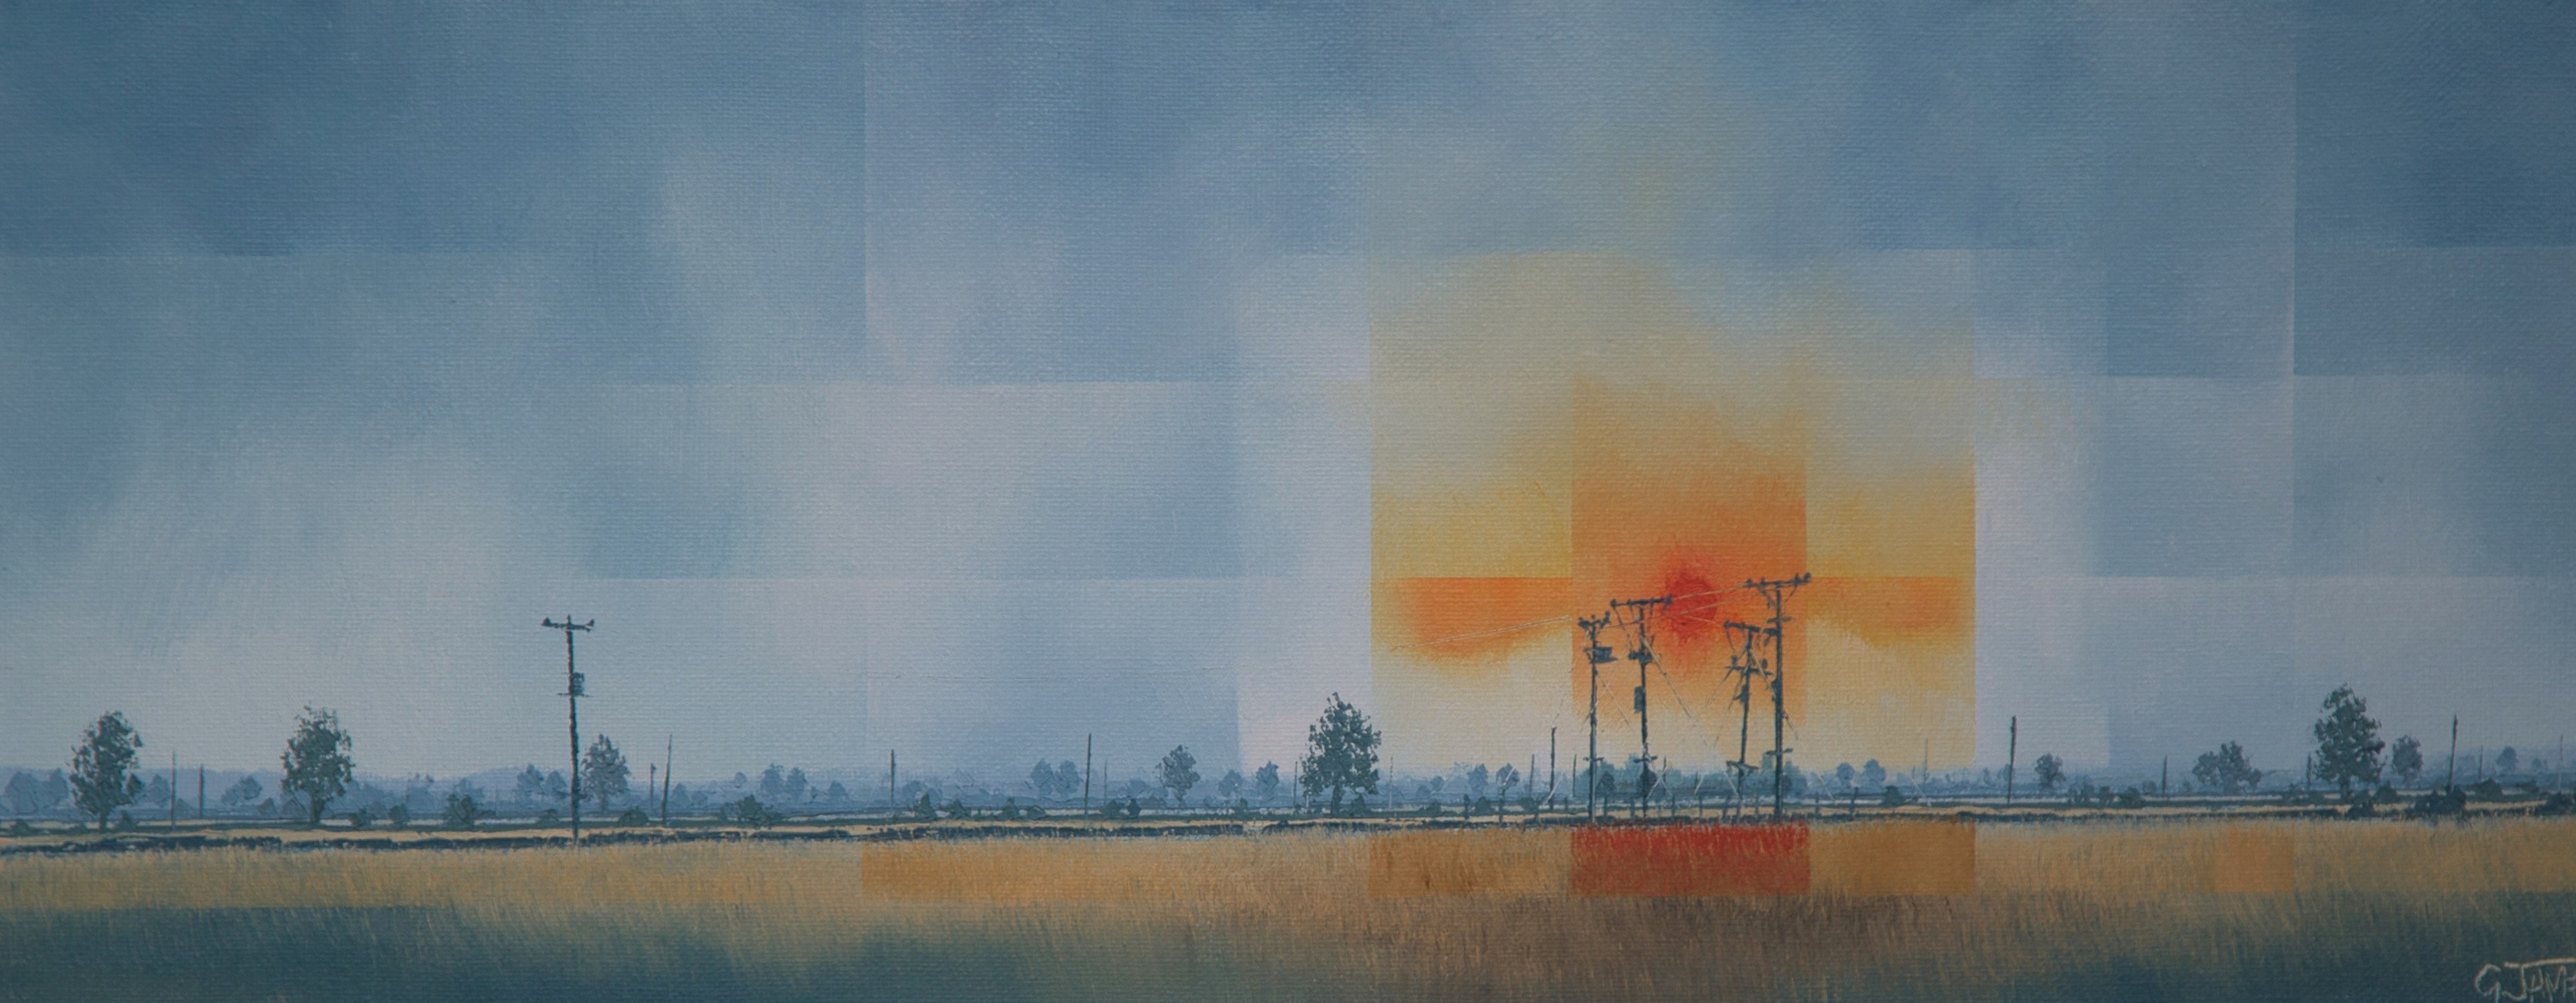 Electric Sunset  £450.00  Hm